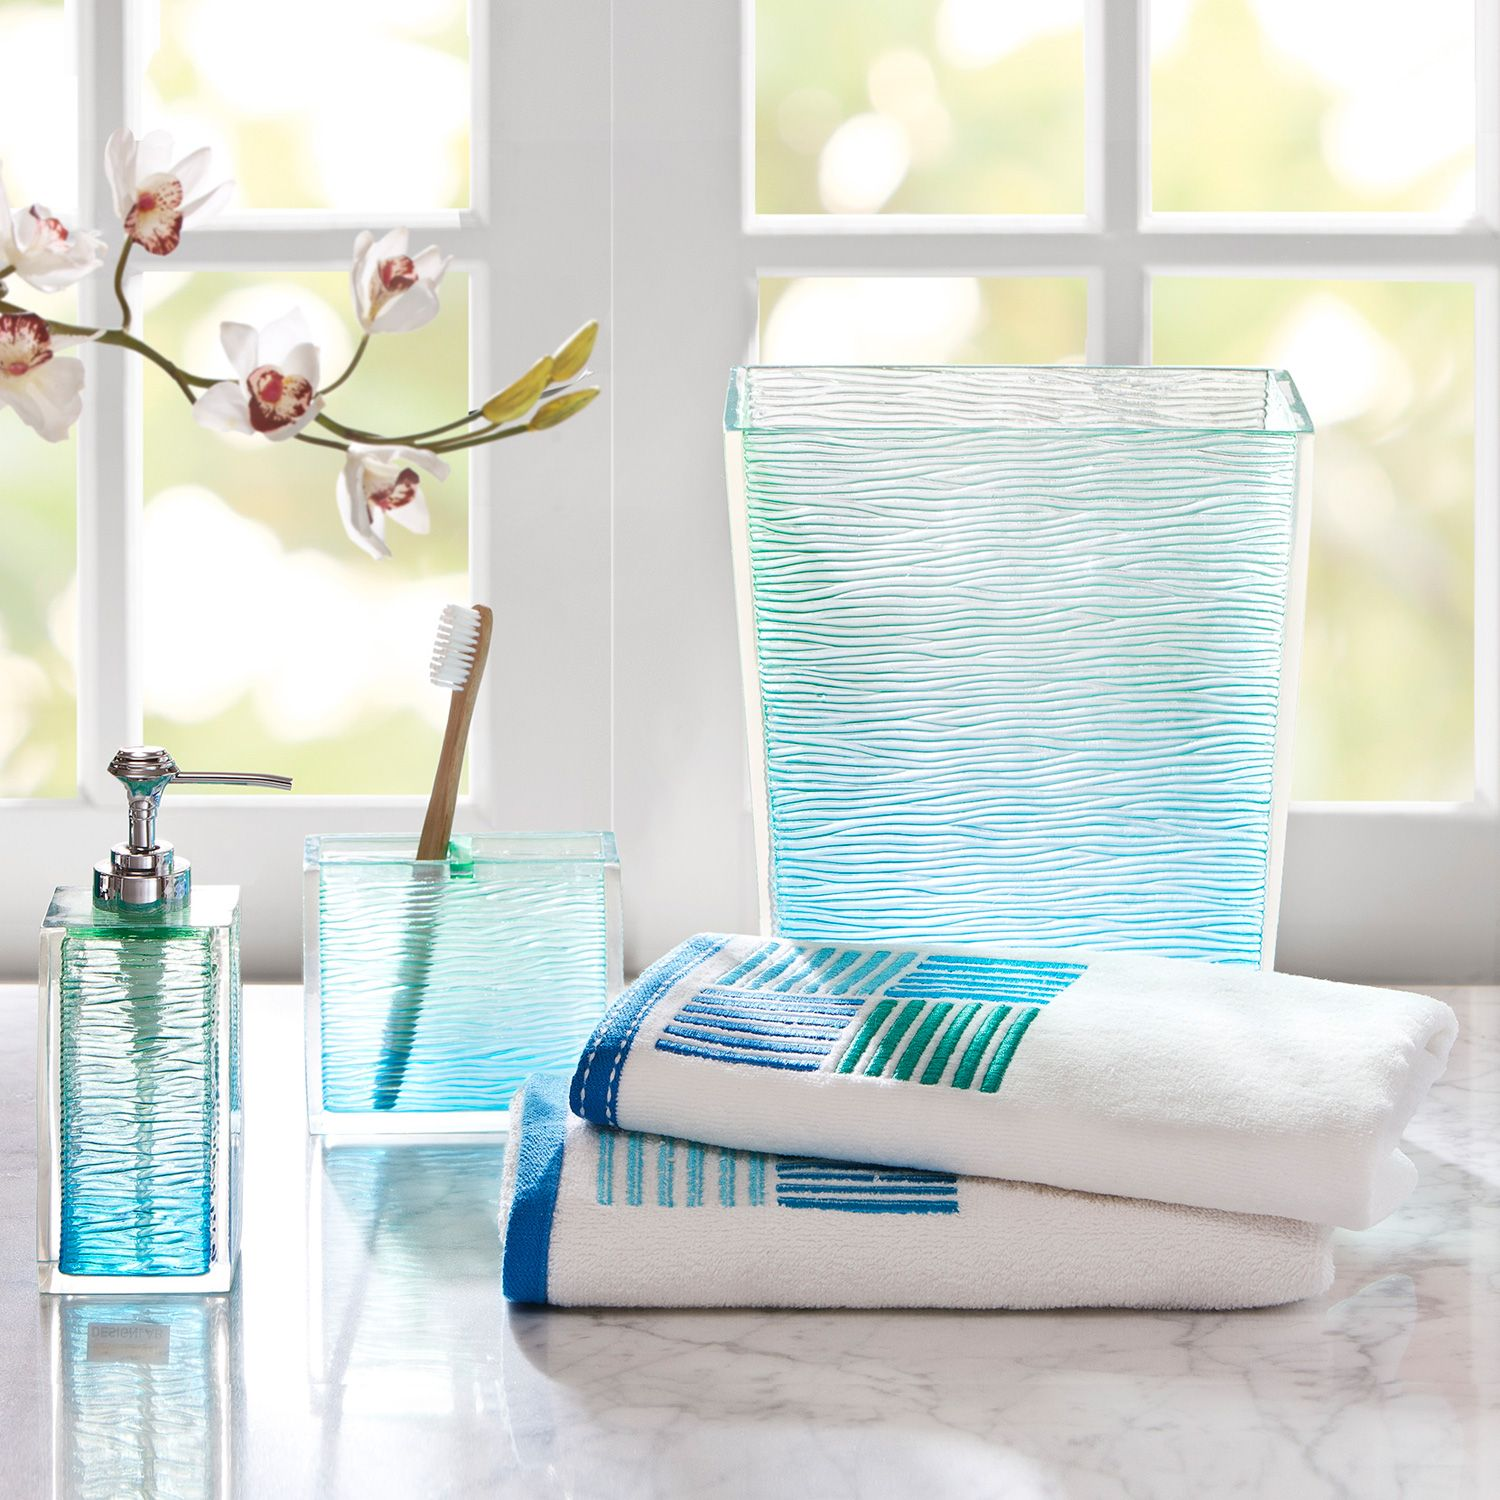 This seaglass bath accessory set from Madison Park adds